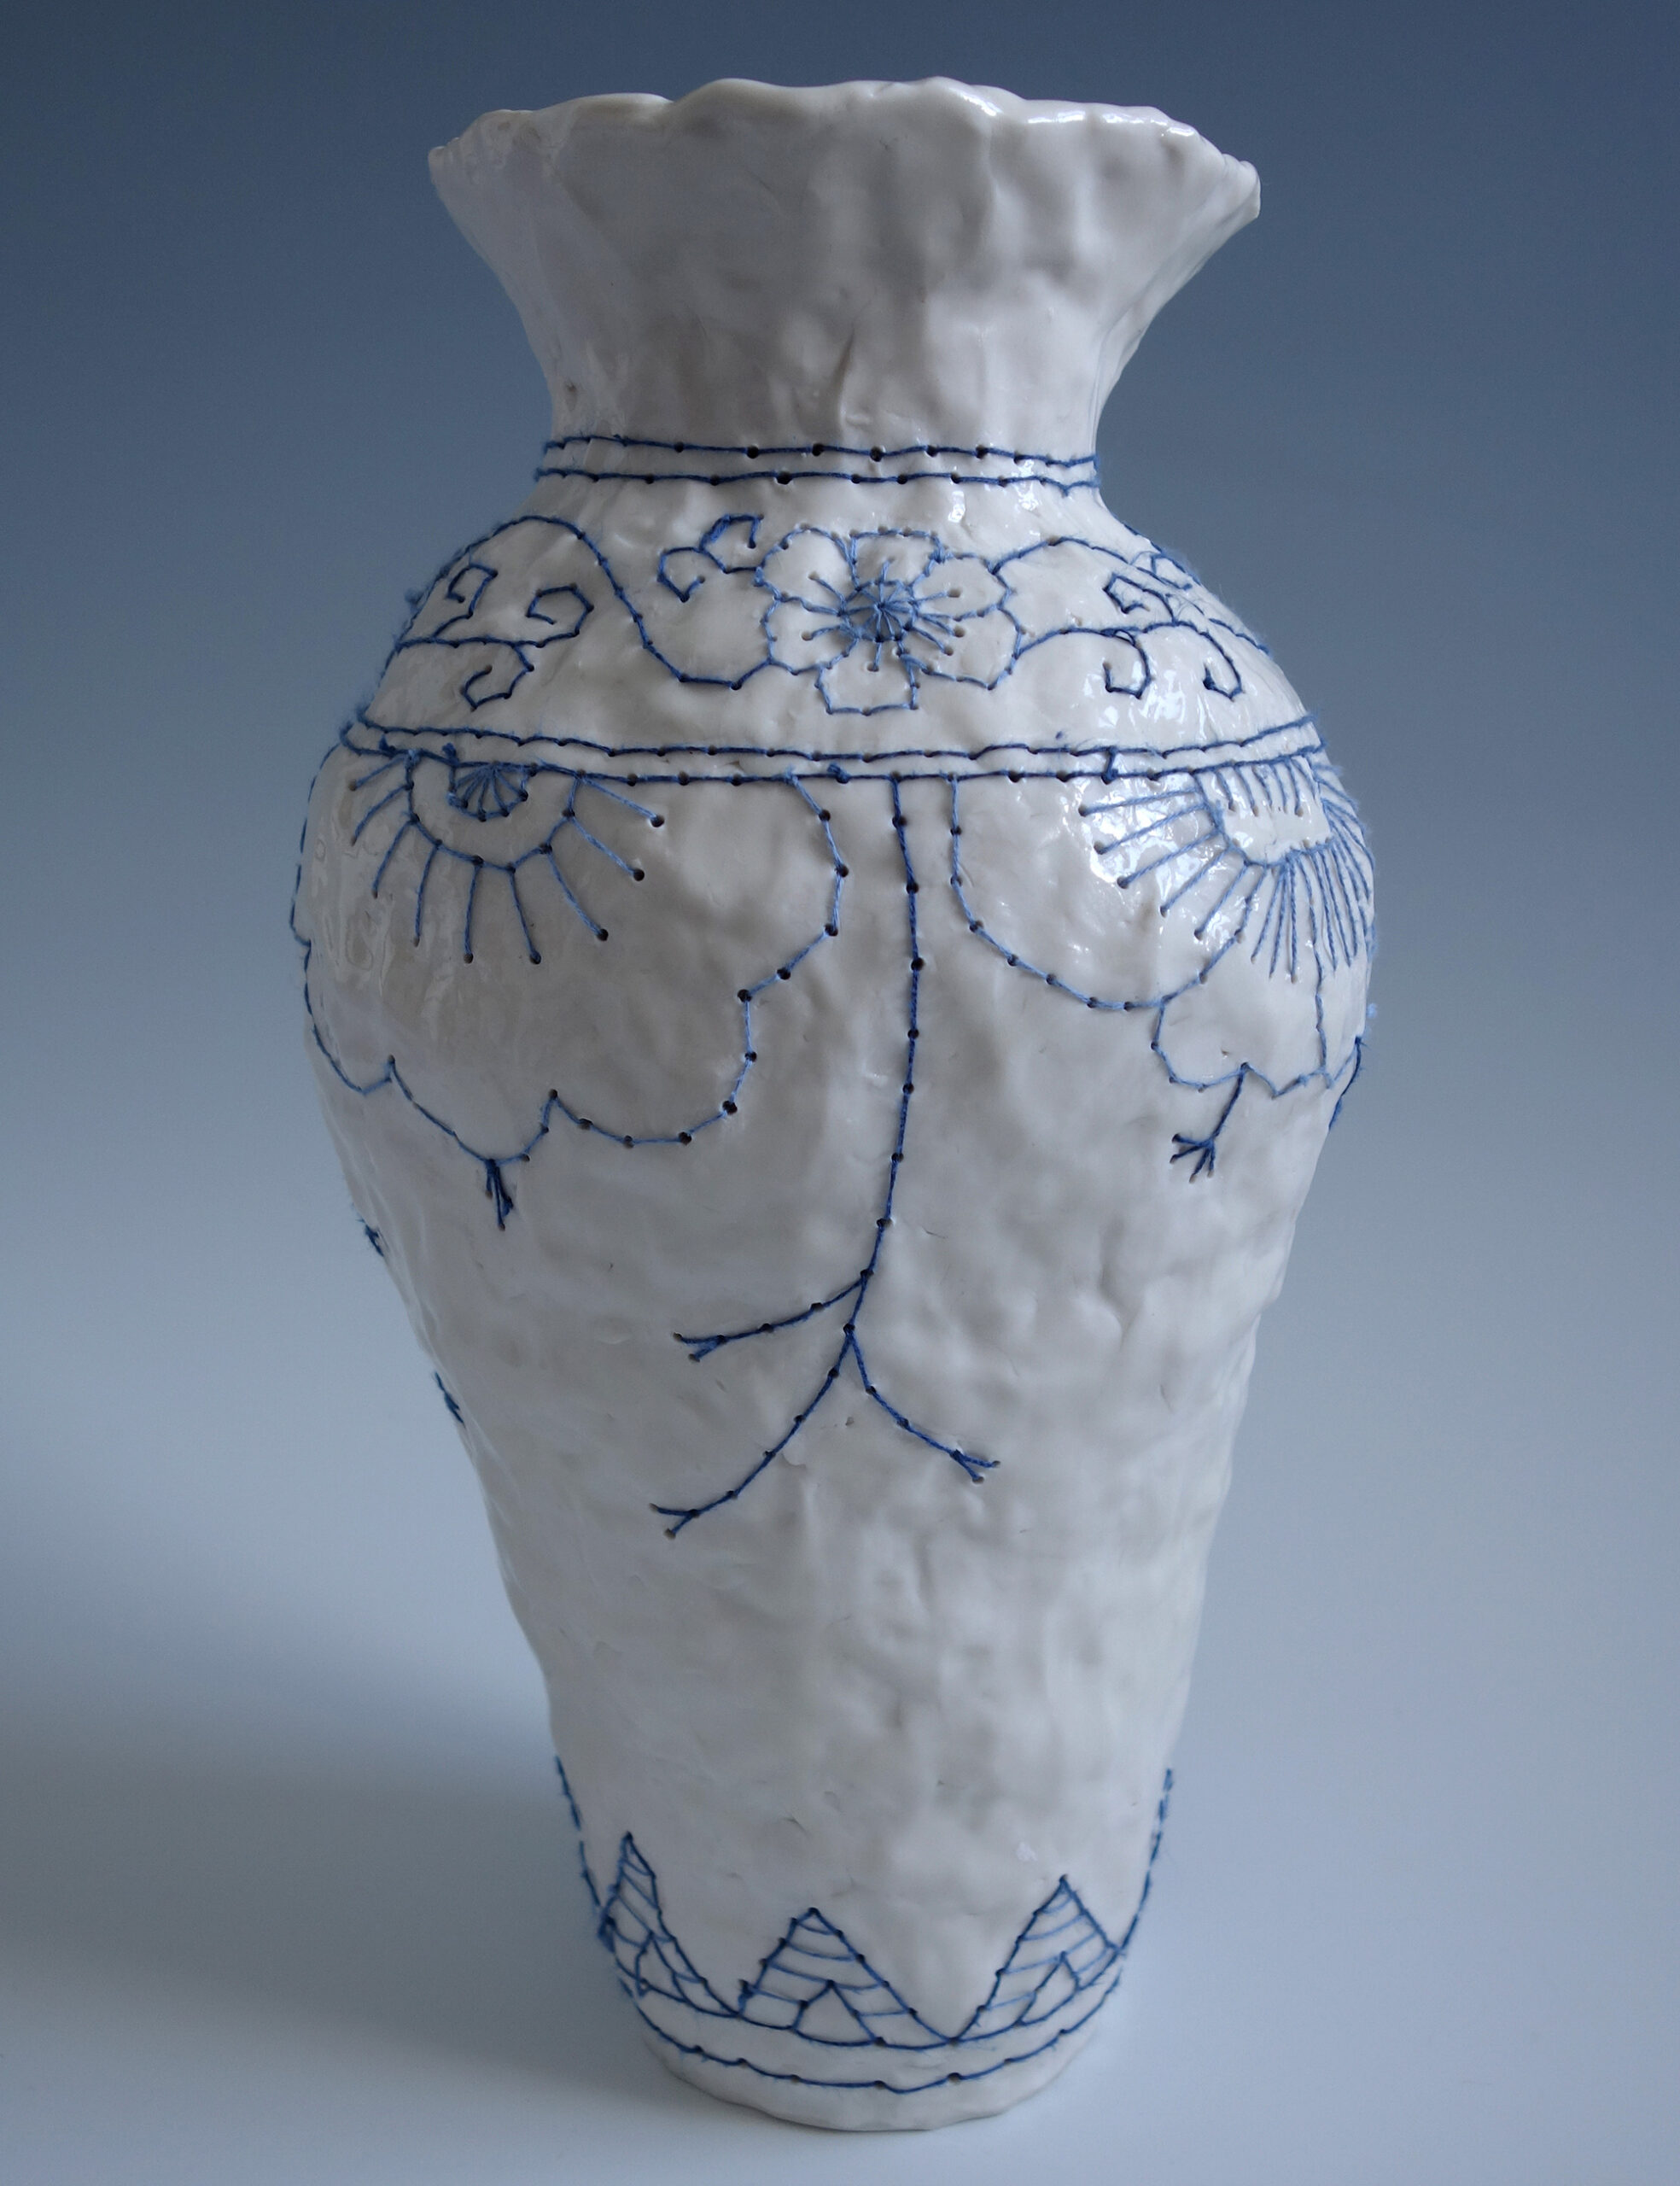 Readymade Cross-Stitch and Floral Motifs Are Embroidered Directly into Porcelain Vases